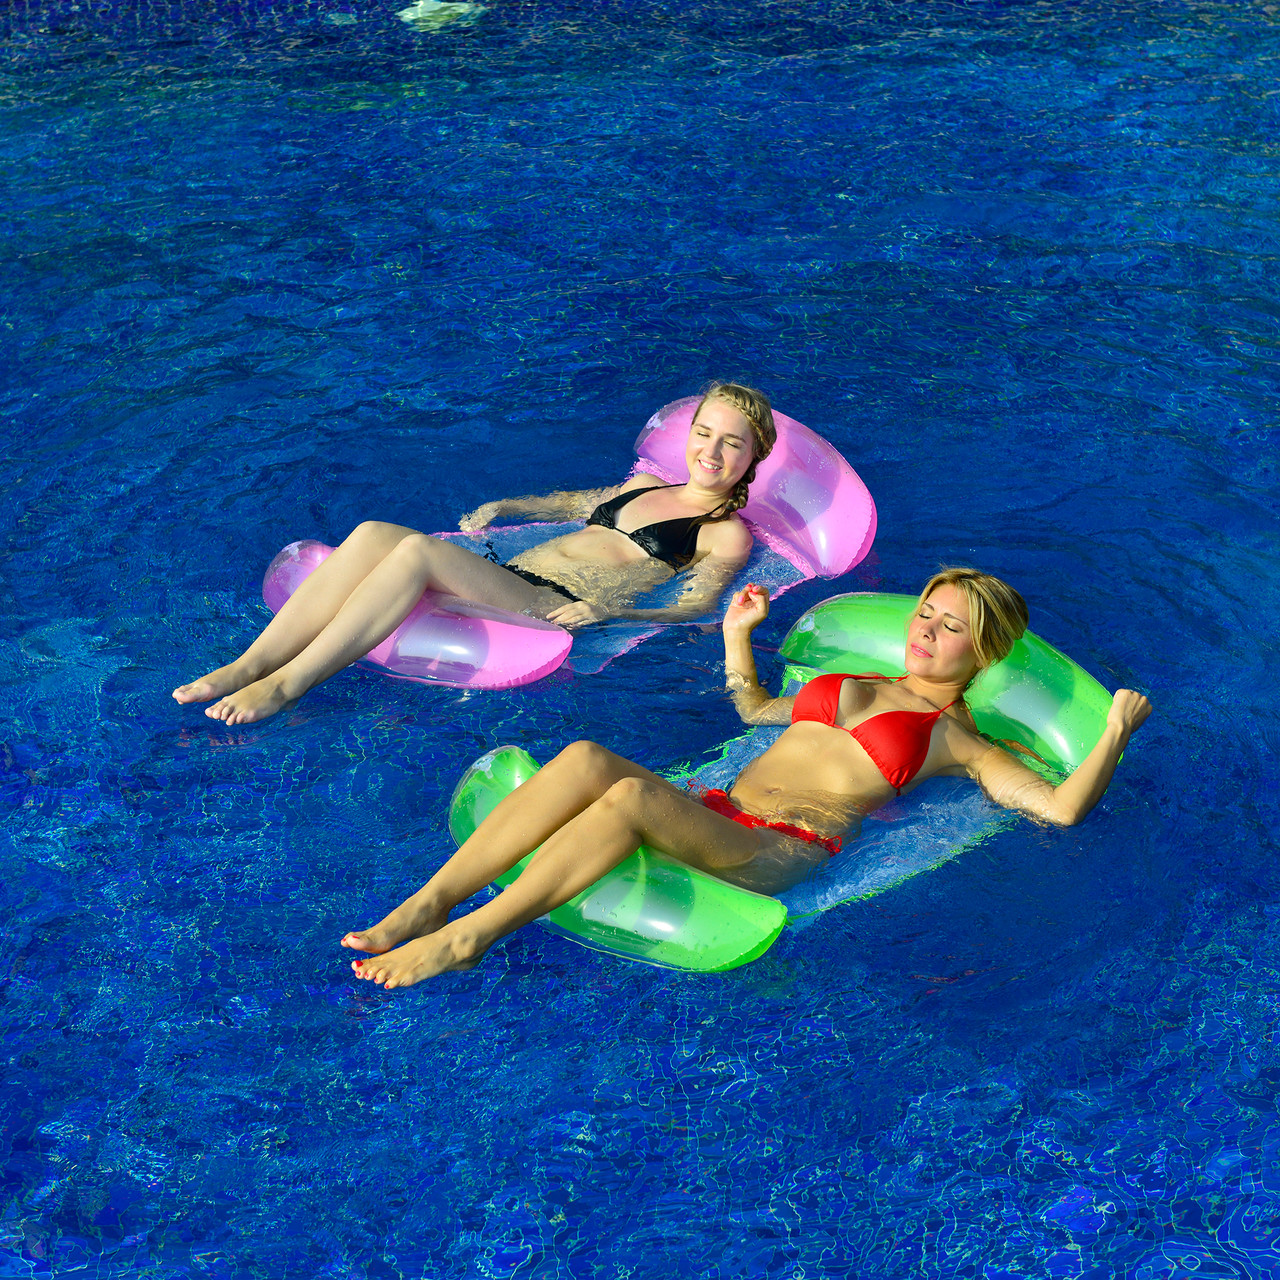 Inflatable Green and White Swimming Pool Lounger Float, 61-Inch - 32148191